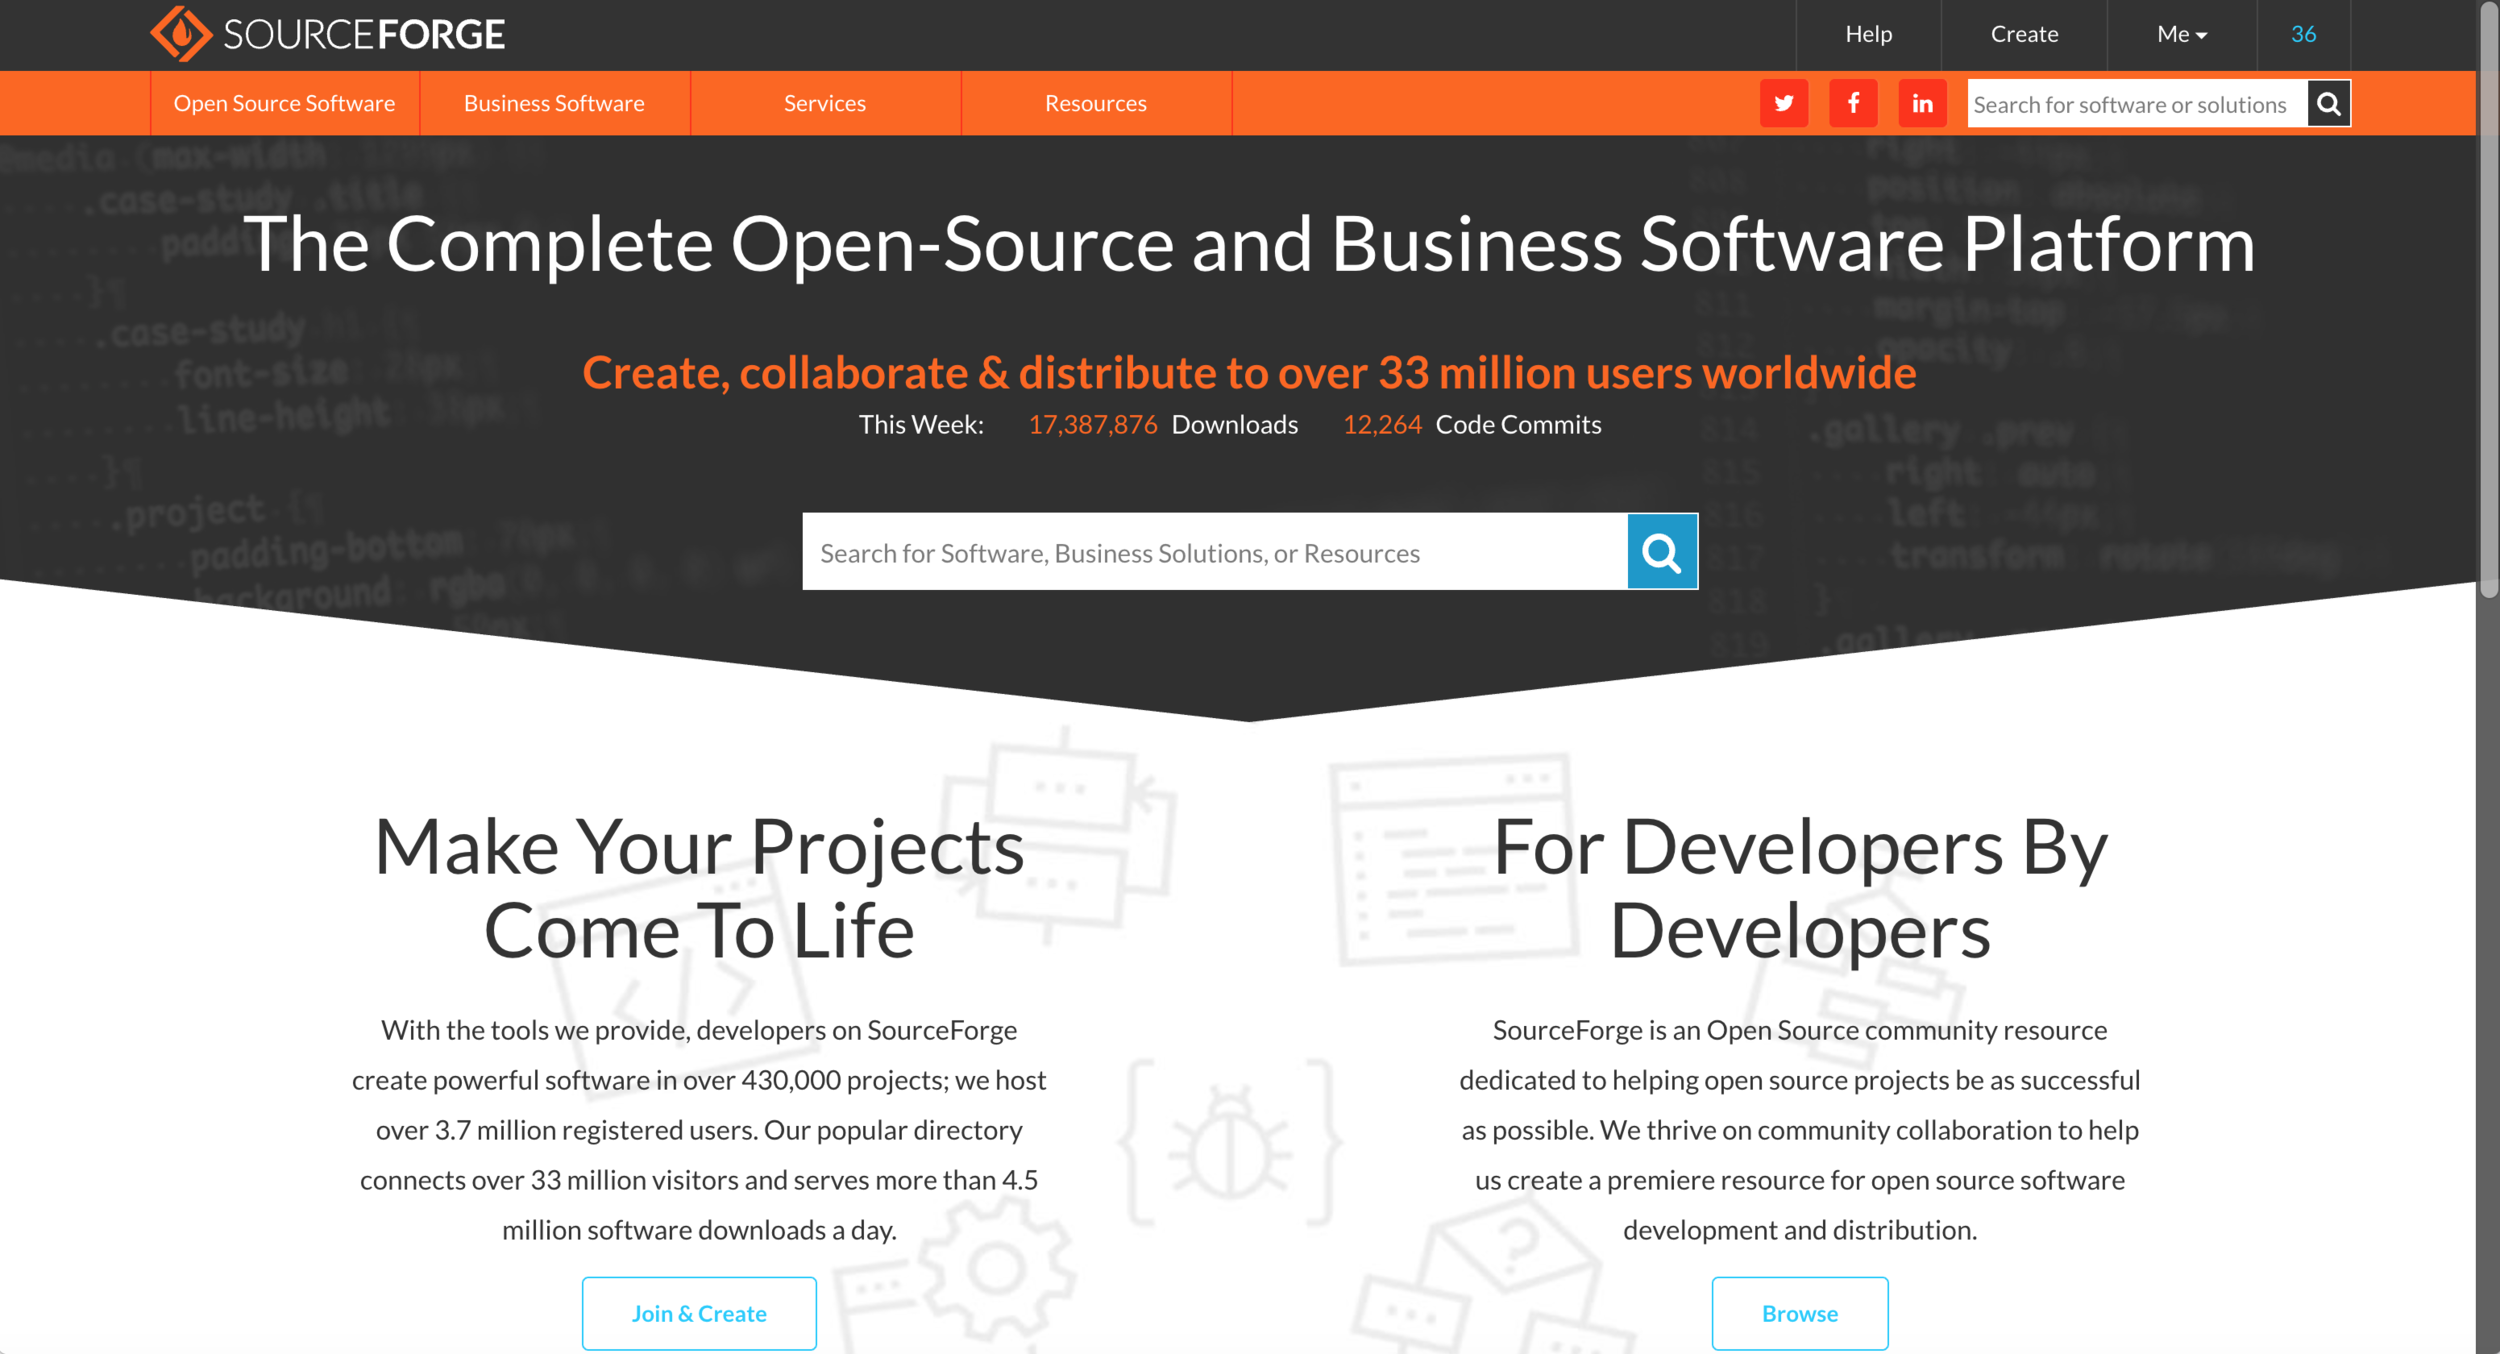 sourceforge-main.png